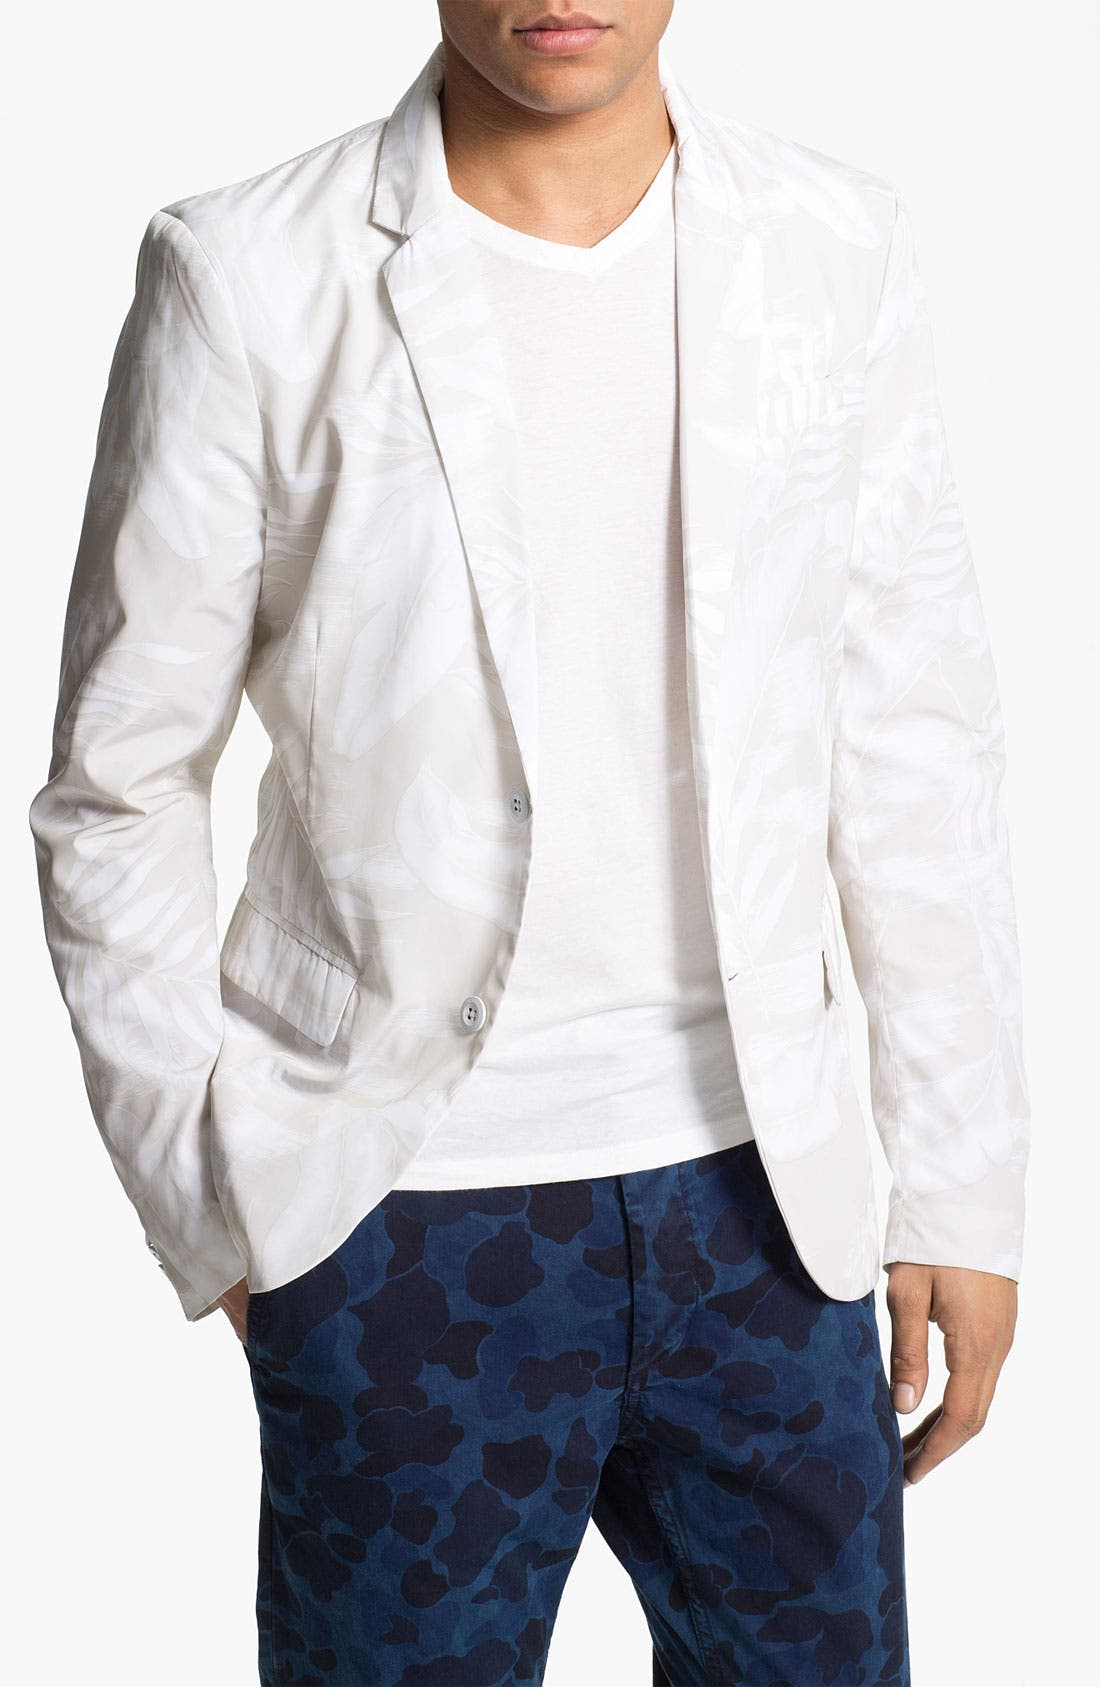 Alternate Image 1 Selected - DIESEL® 'Jristate' Print Blazer